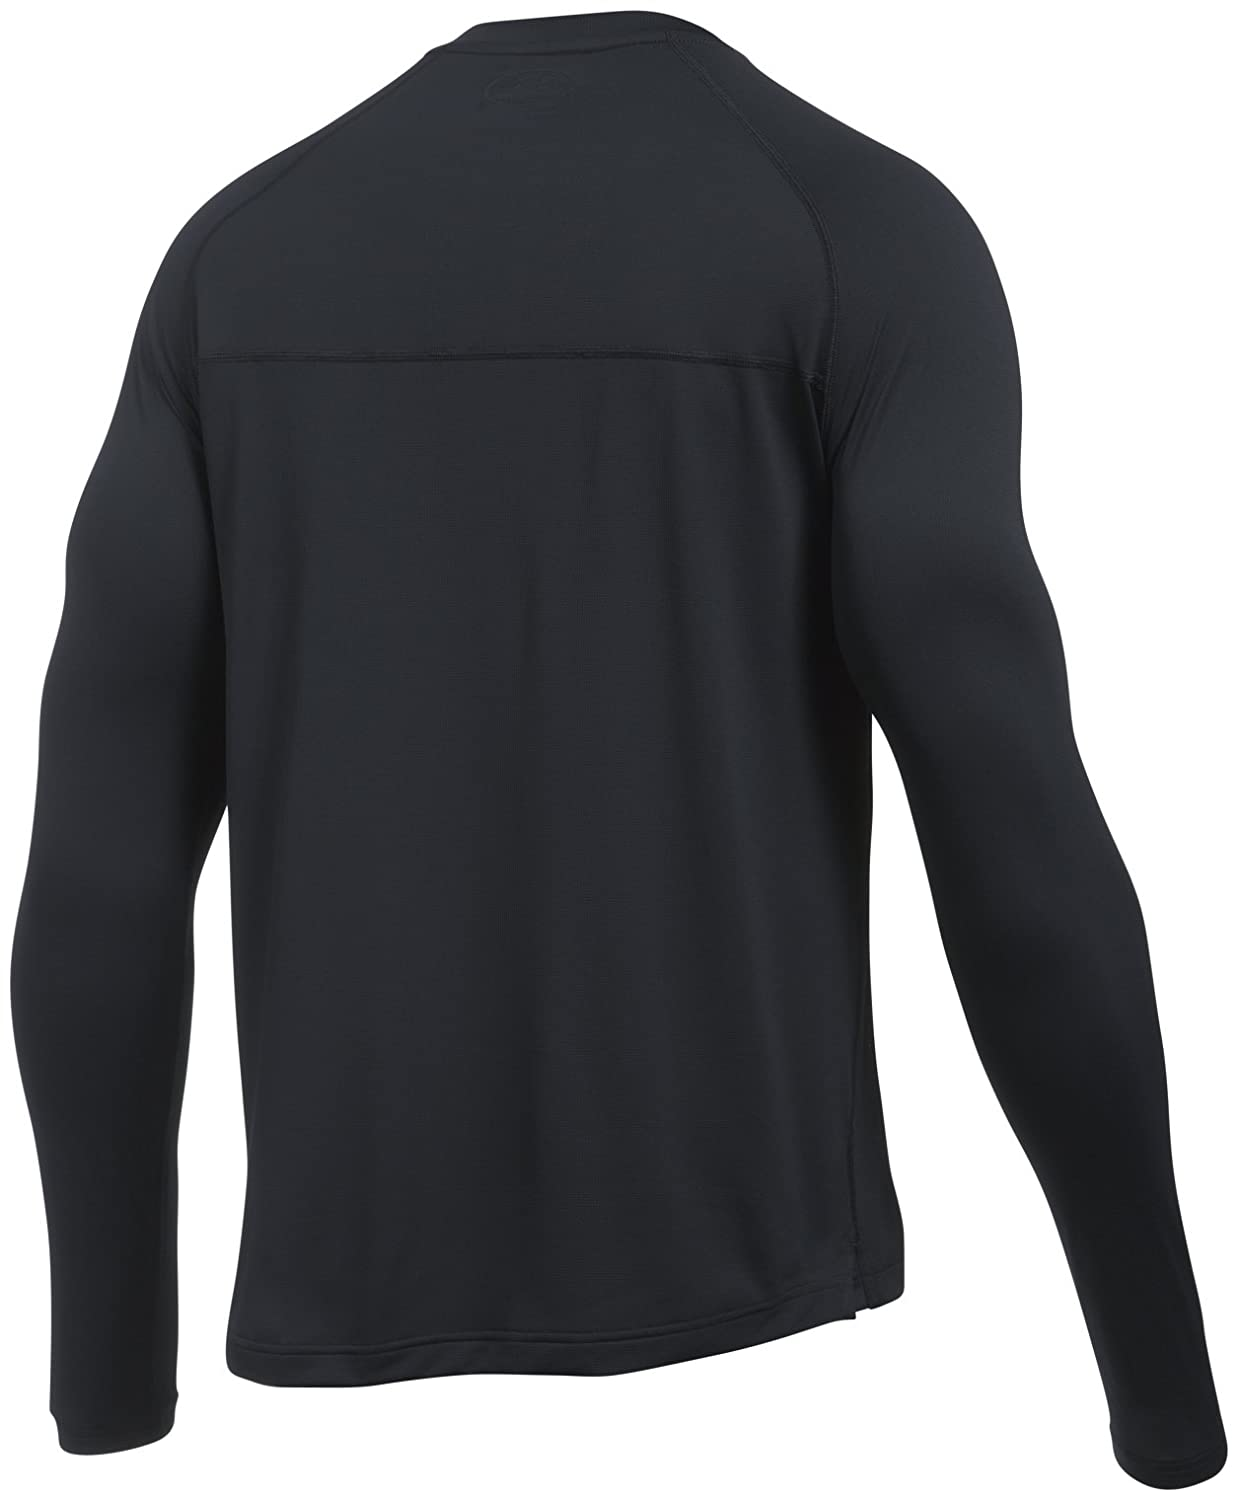 f529d4b259 Under Armour Sunblock Long Sleeve Tee - Men's